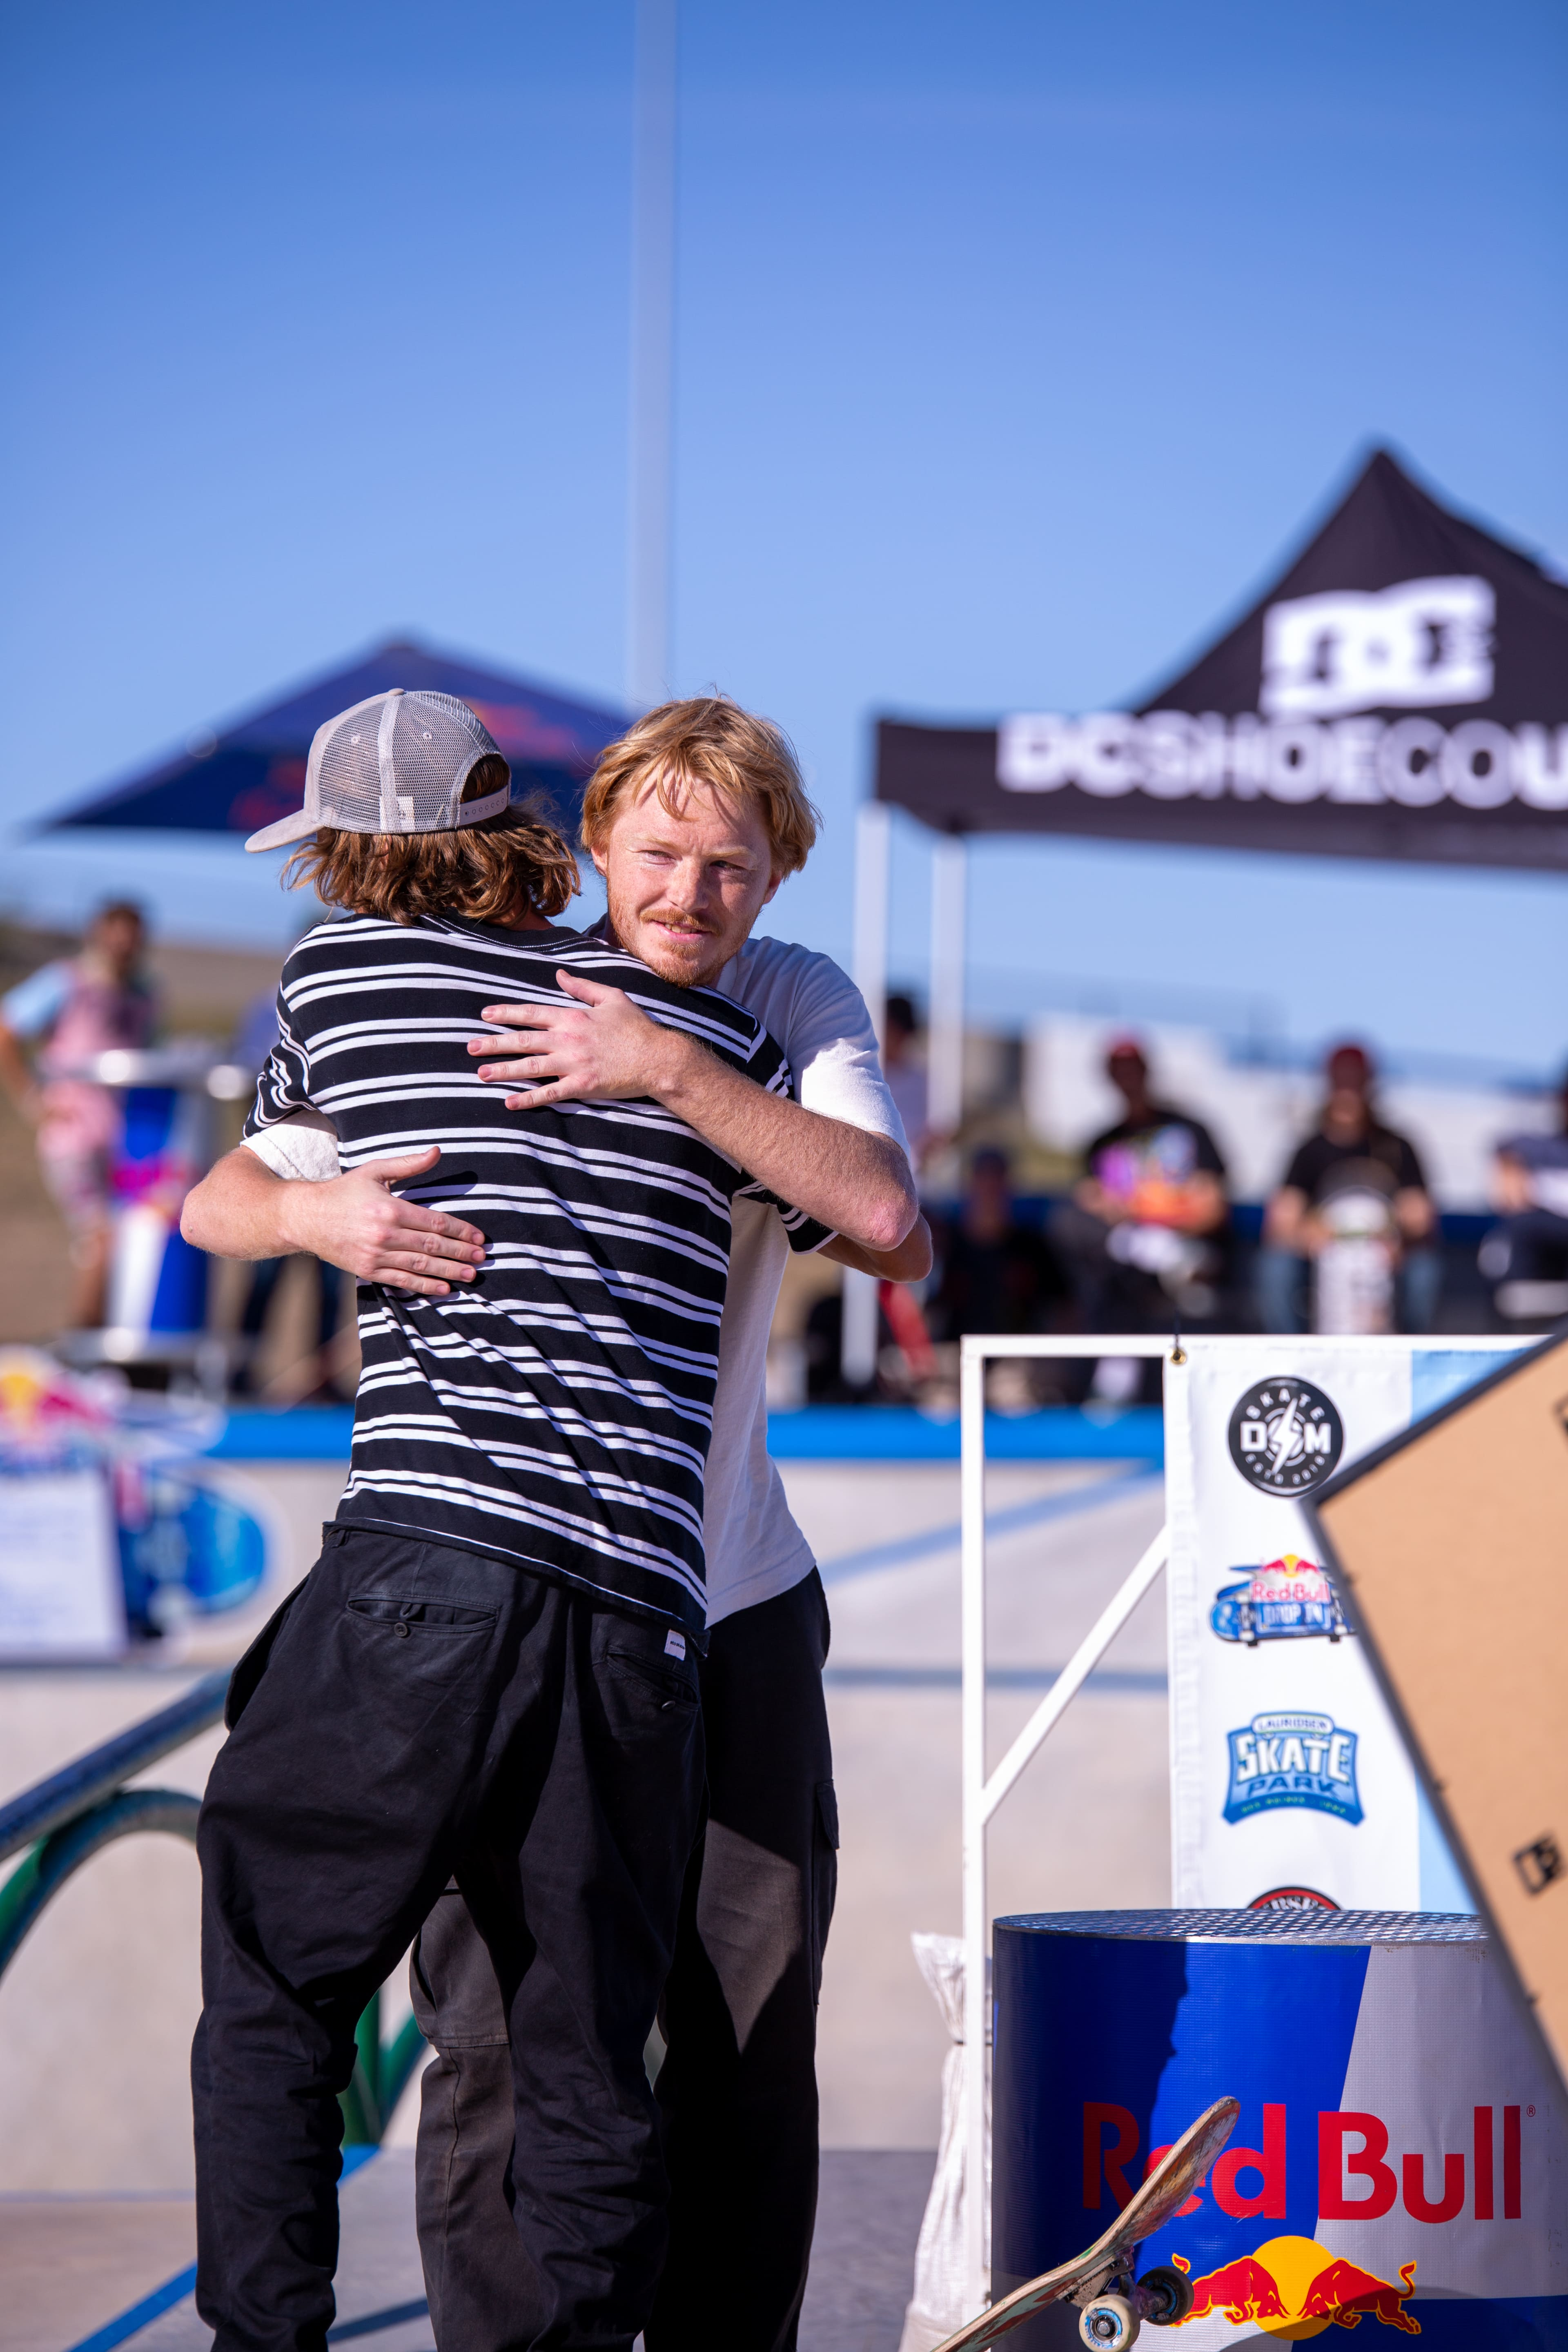 Des Moines Streetstyle Open 2021 - Hugs are Back